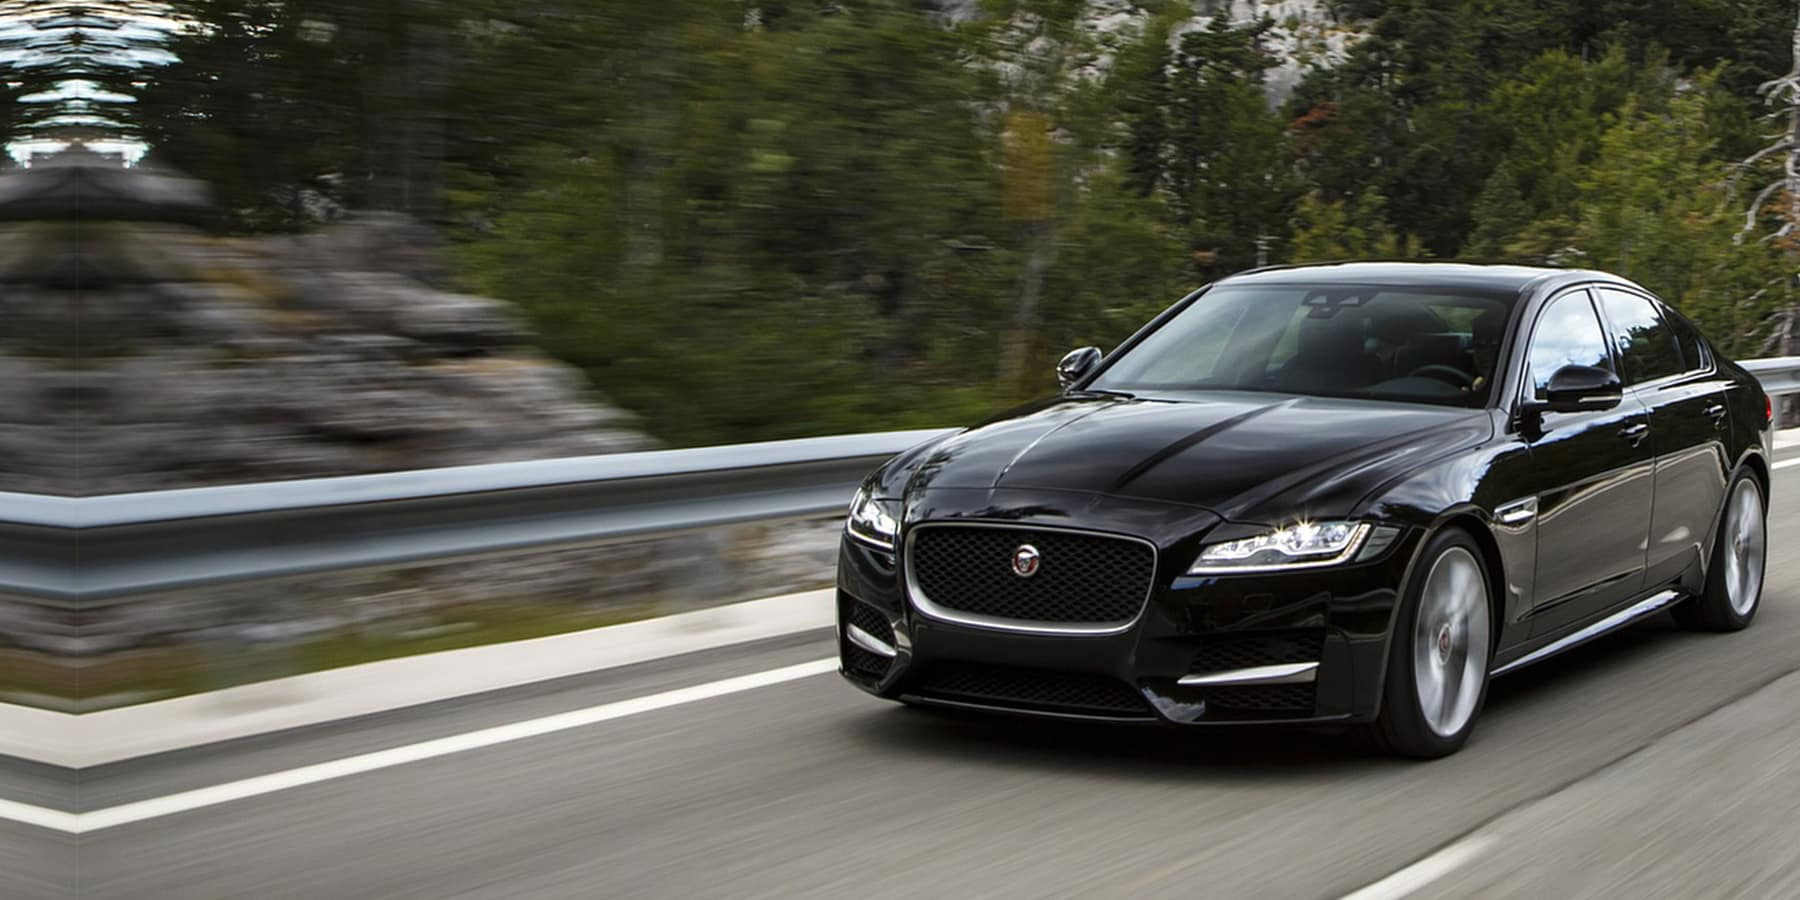 Jaguar Auto Repair Shops Near Me Auto Repair Shop In